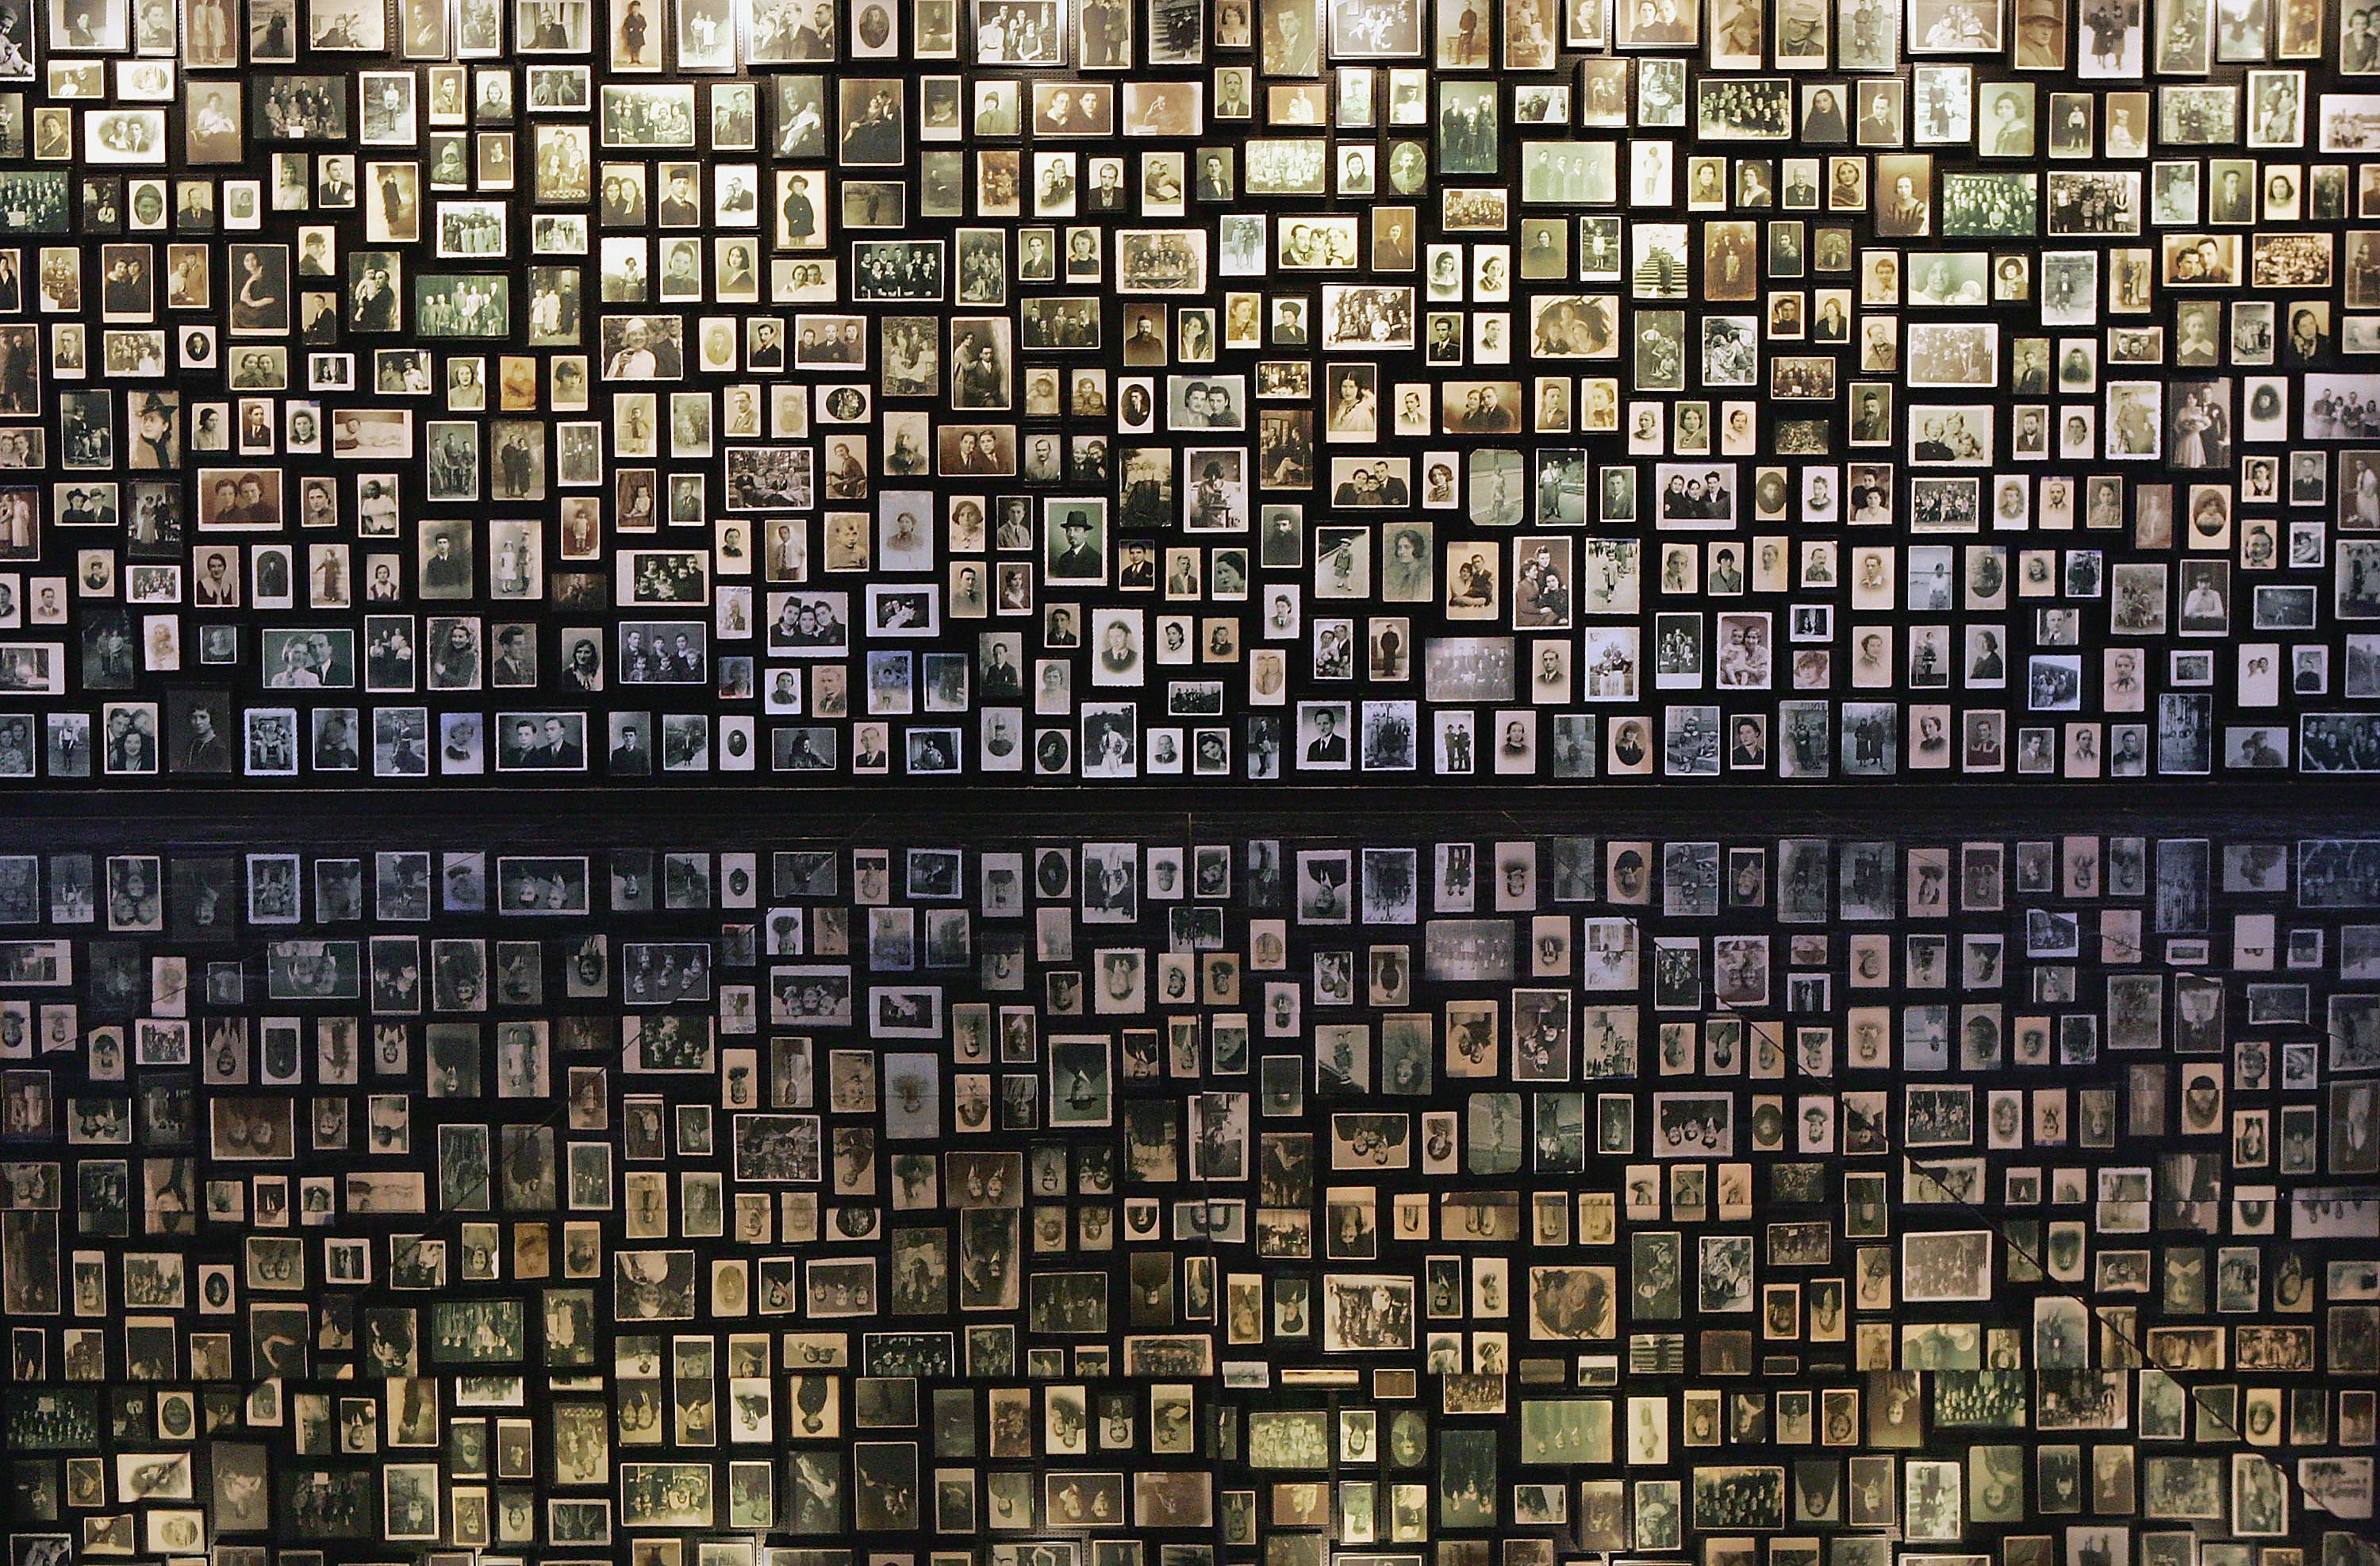 Photographs are displayed at the Birkenau Museum of the many faces of the men, women and children at the Auschwitz II - Birkenau which was built in March 1942 in the village of Brzezinka, Poland. The camp was liberated by the Soviet army on January 27, 1945, January 2005 will be the 60th anniversary of the liberation of the extermination and concentration camps, when survivors and victims who suffered as a result of the Holocaust will commemorated across the world. (Scott Barbour/Getty Images)